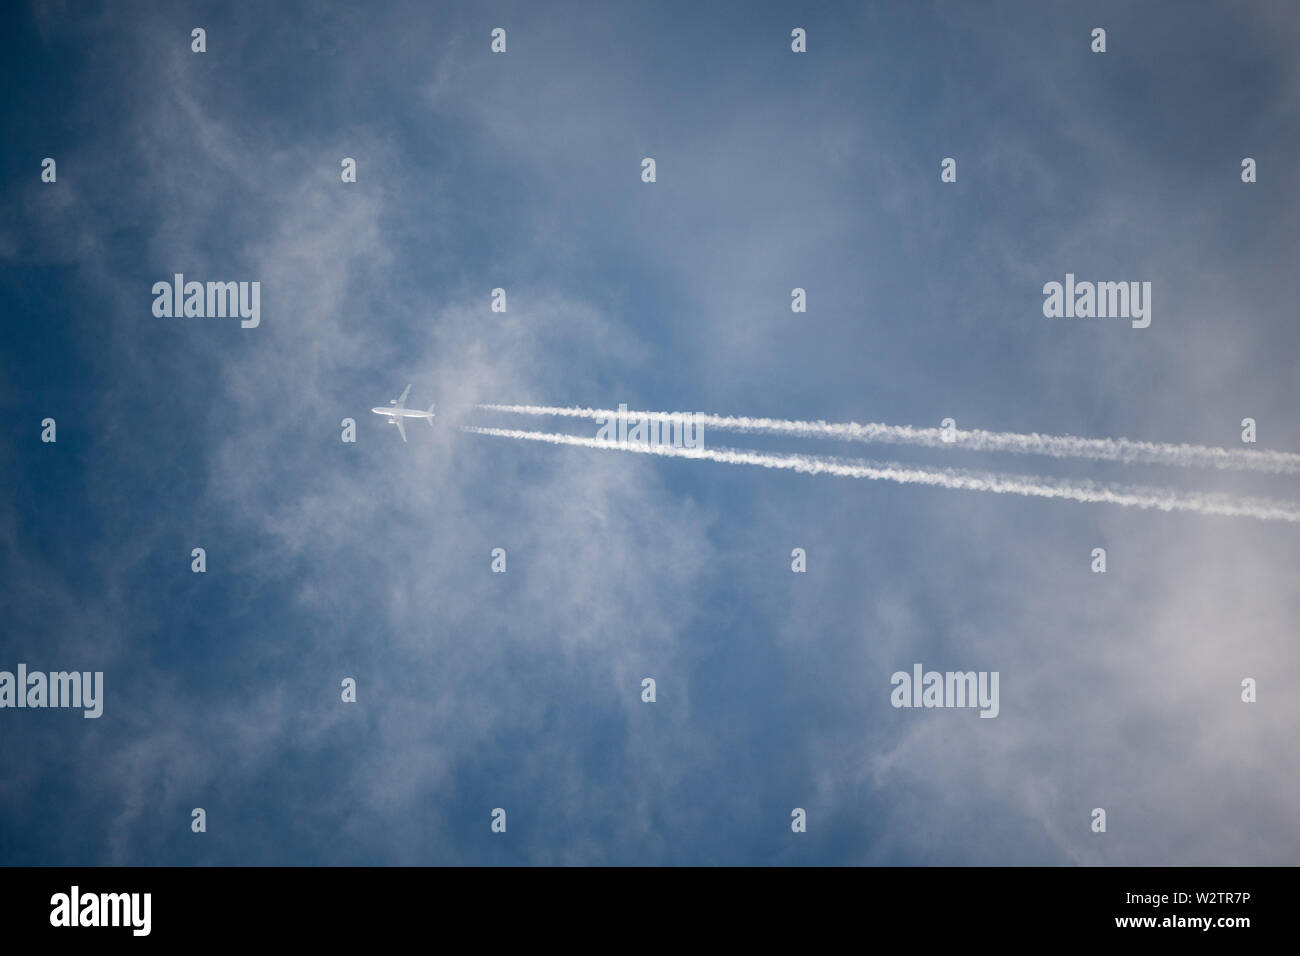 Trace of jet plane and clouds in Poland. June 25th 2019 © Wojciech Strozyk / Alamy Stock Photo - Stock Image